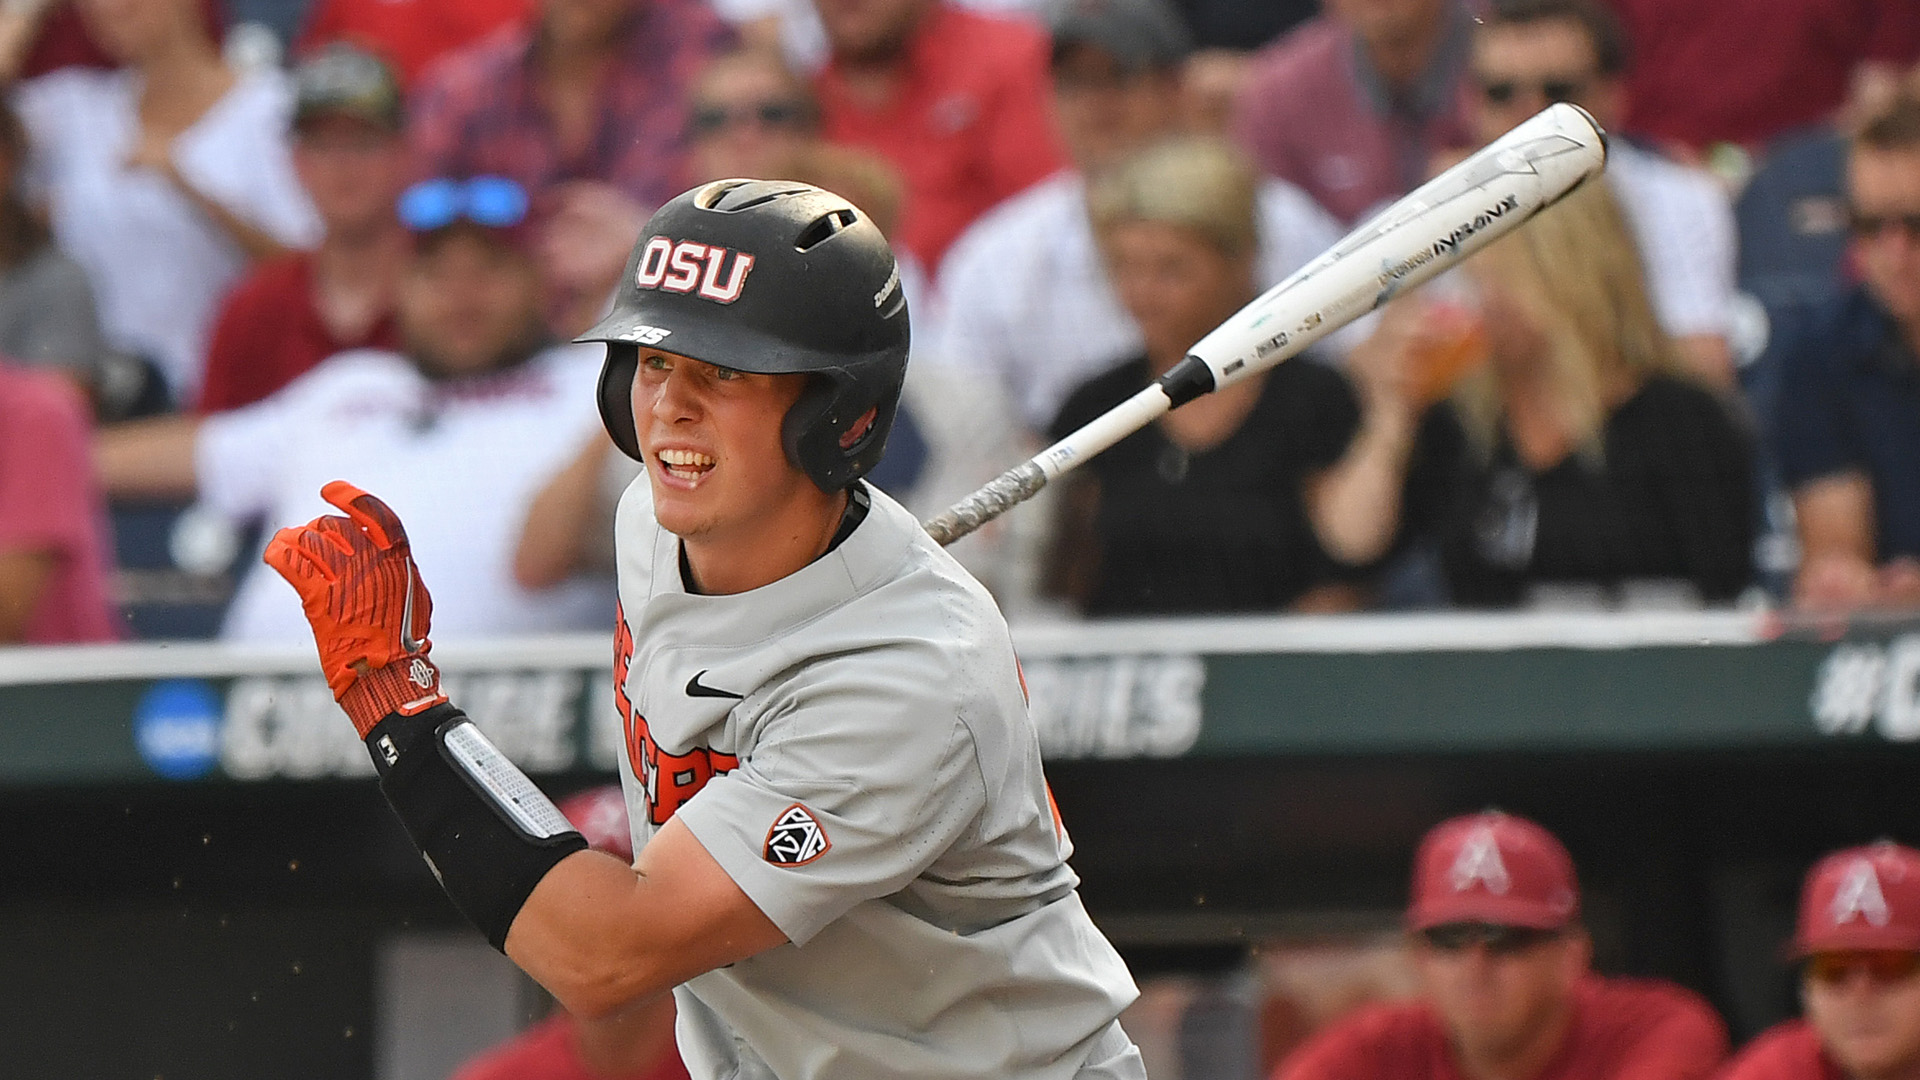 Oregon State Beavers Claims 3rd College World Series Title